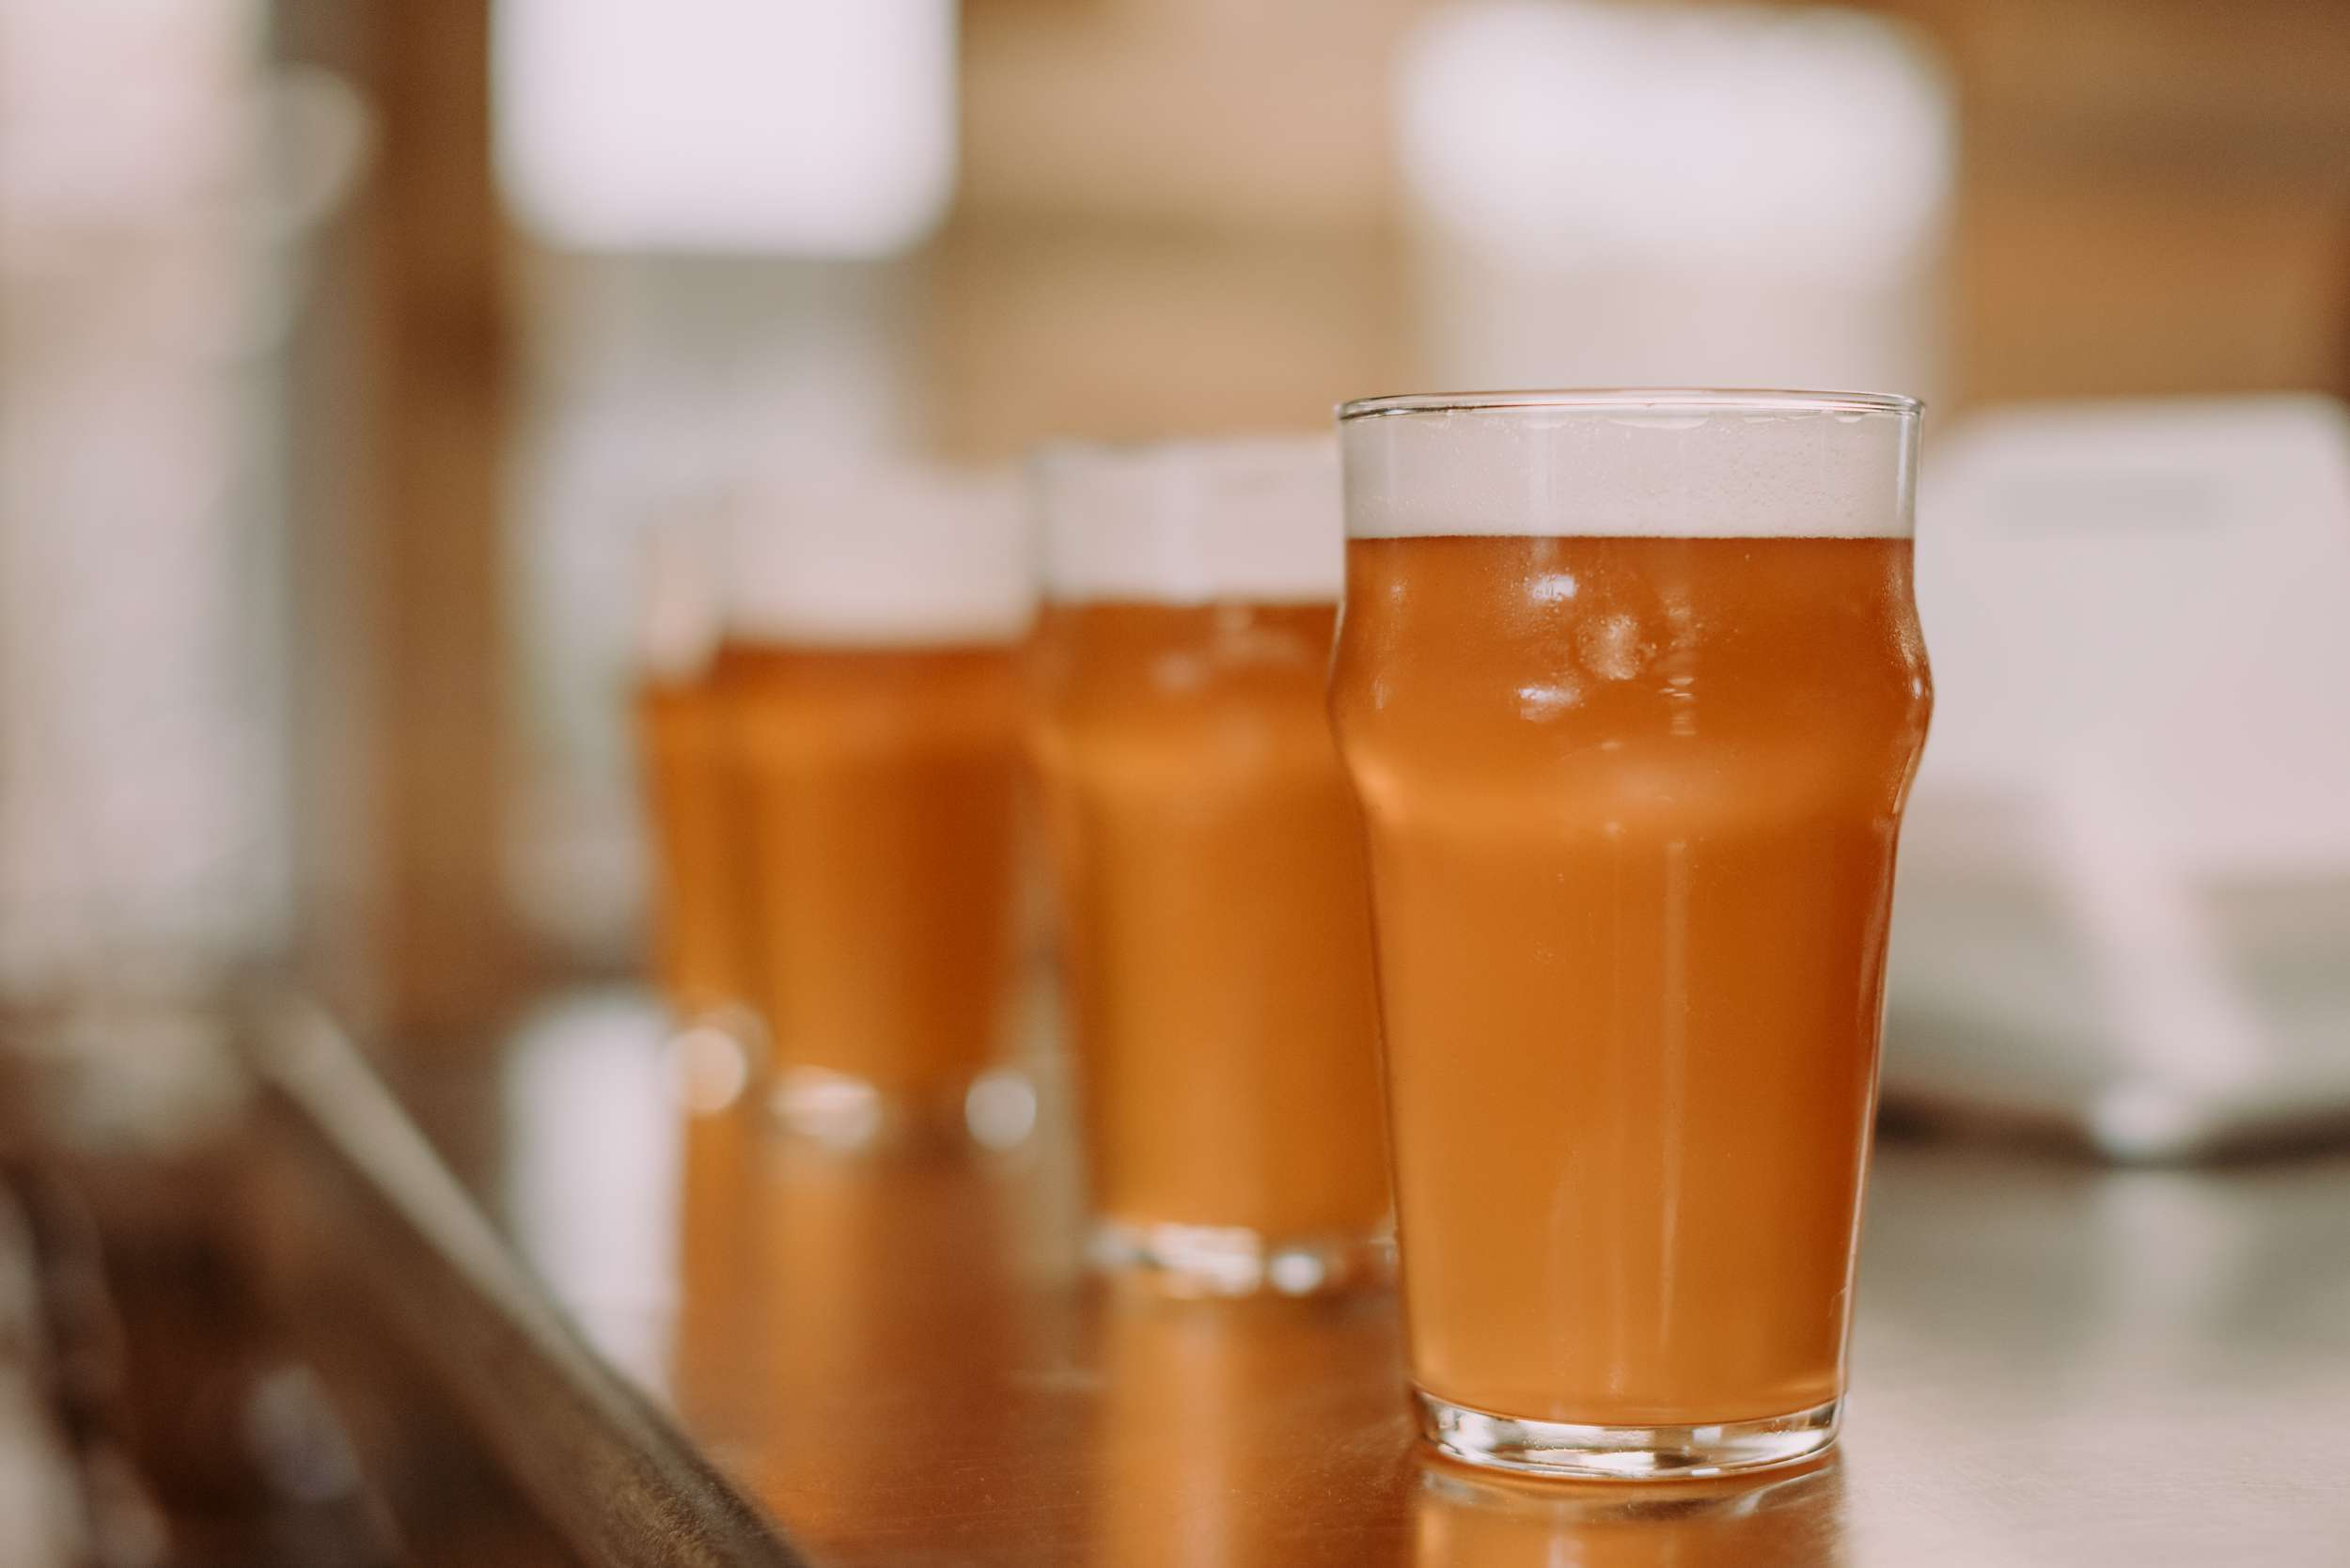 four pint glasses on a bar filled with amber-colored beer. Only one glass of beer is in focus